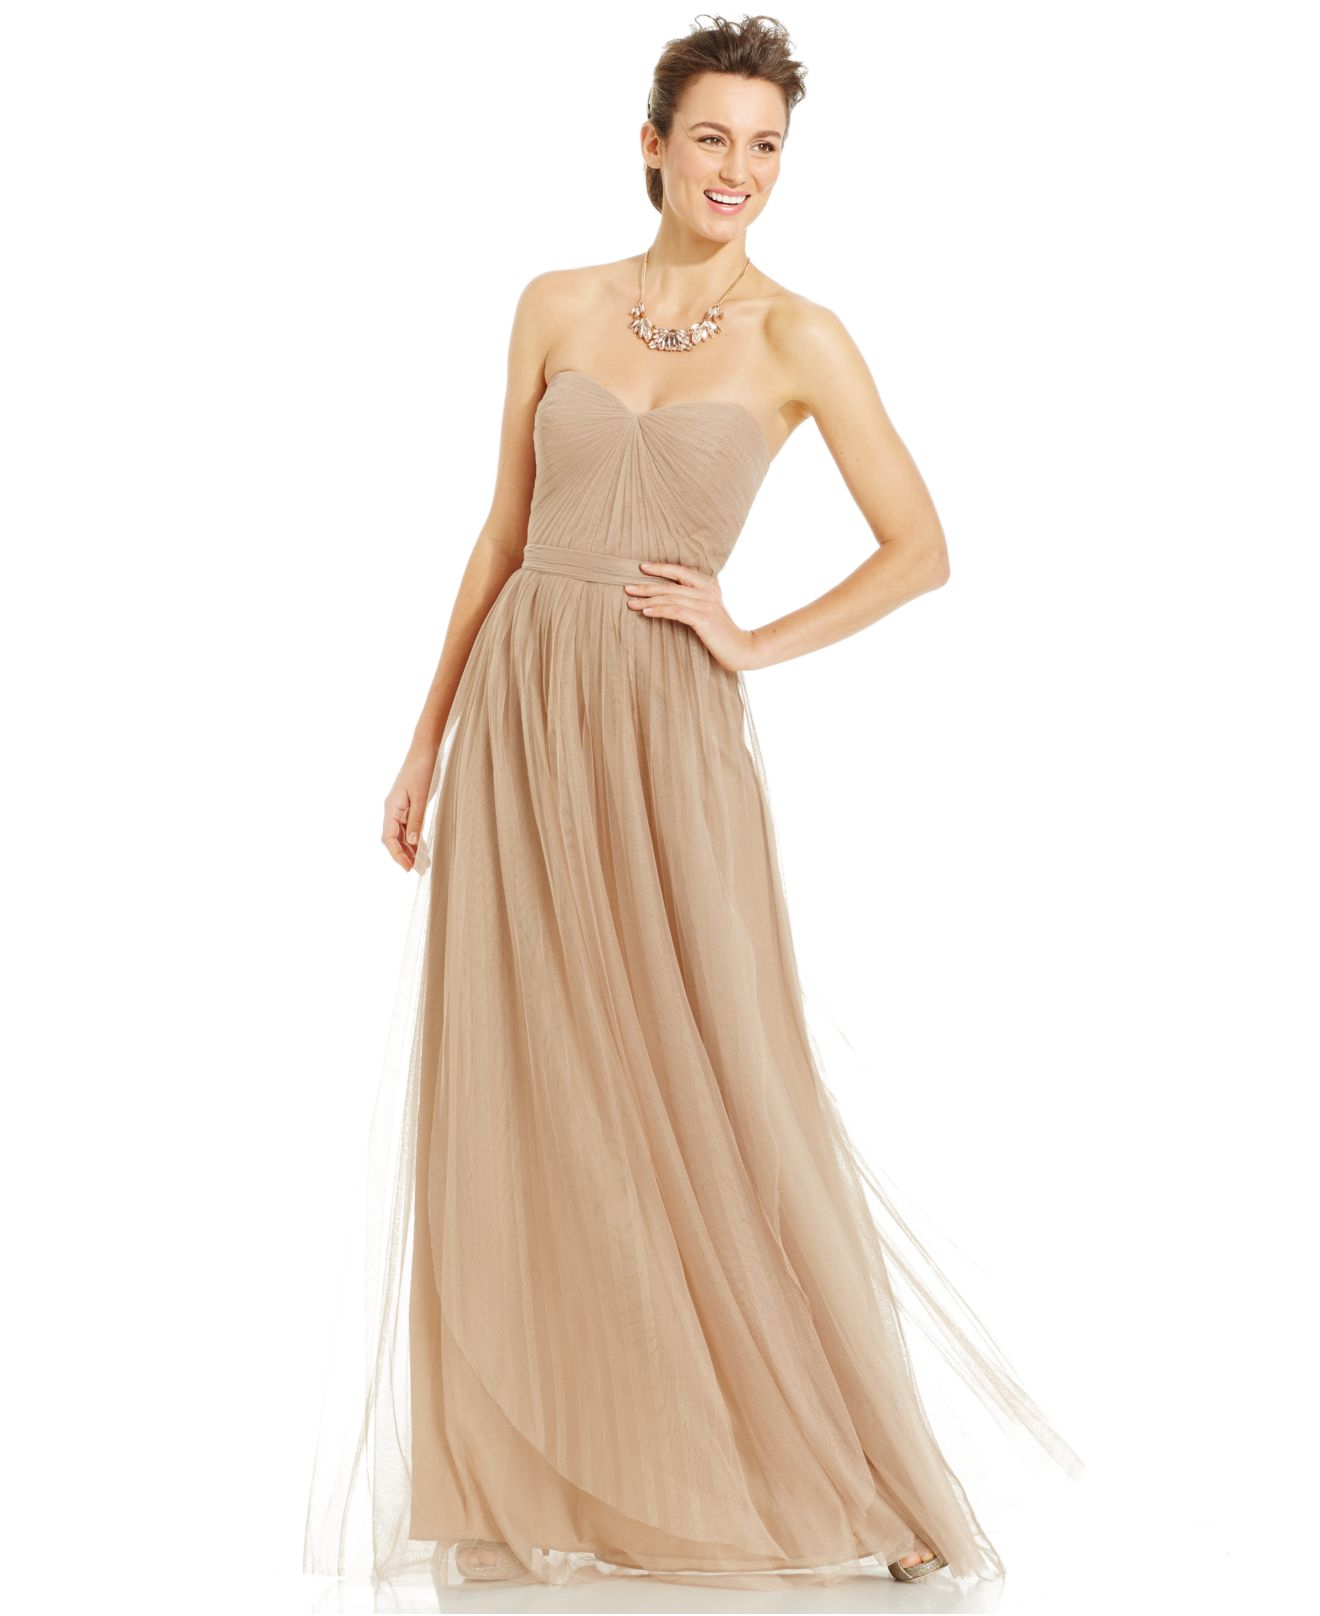 Lyst - Adrianna Papell Pleated Strapless Tulle Gown in Natural